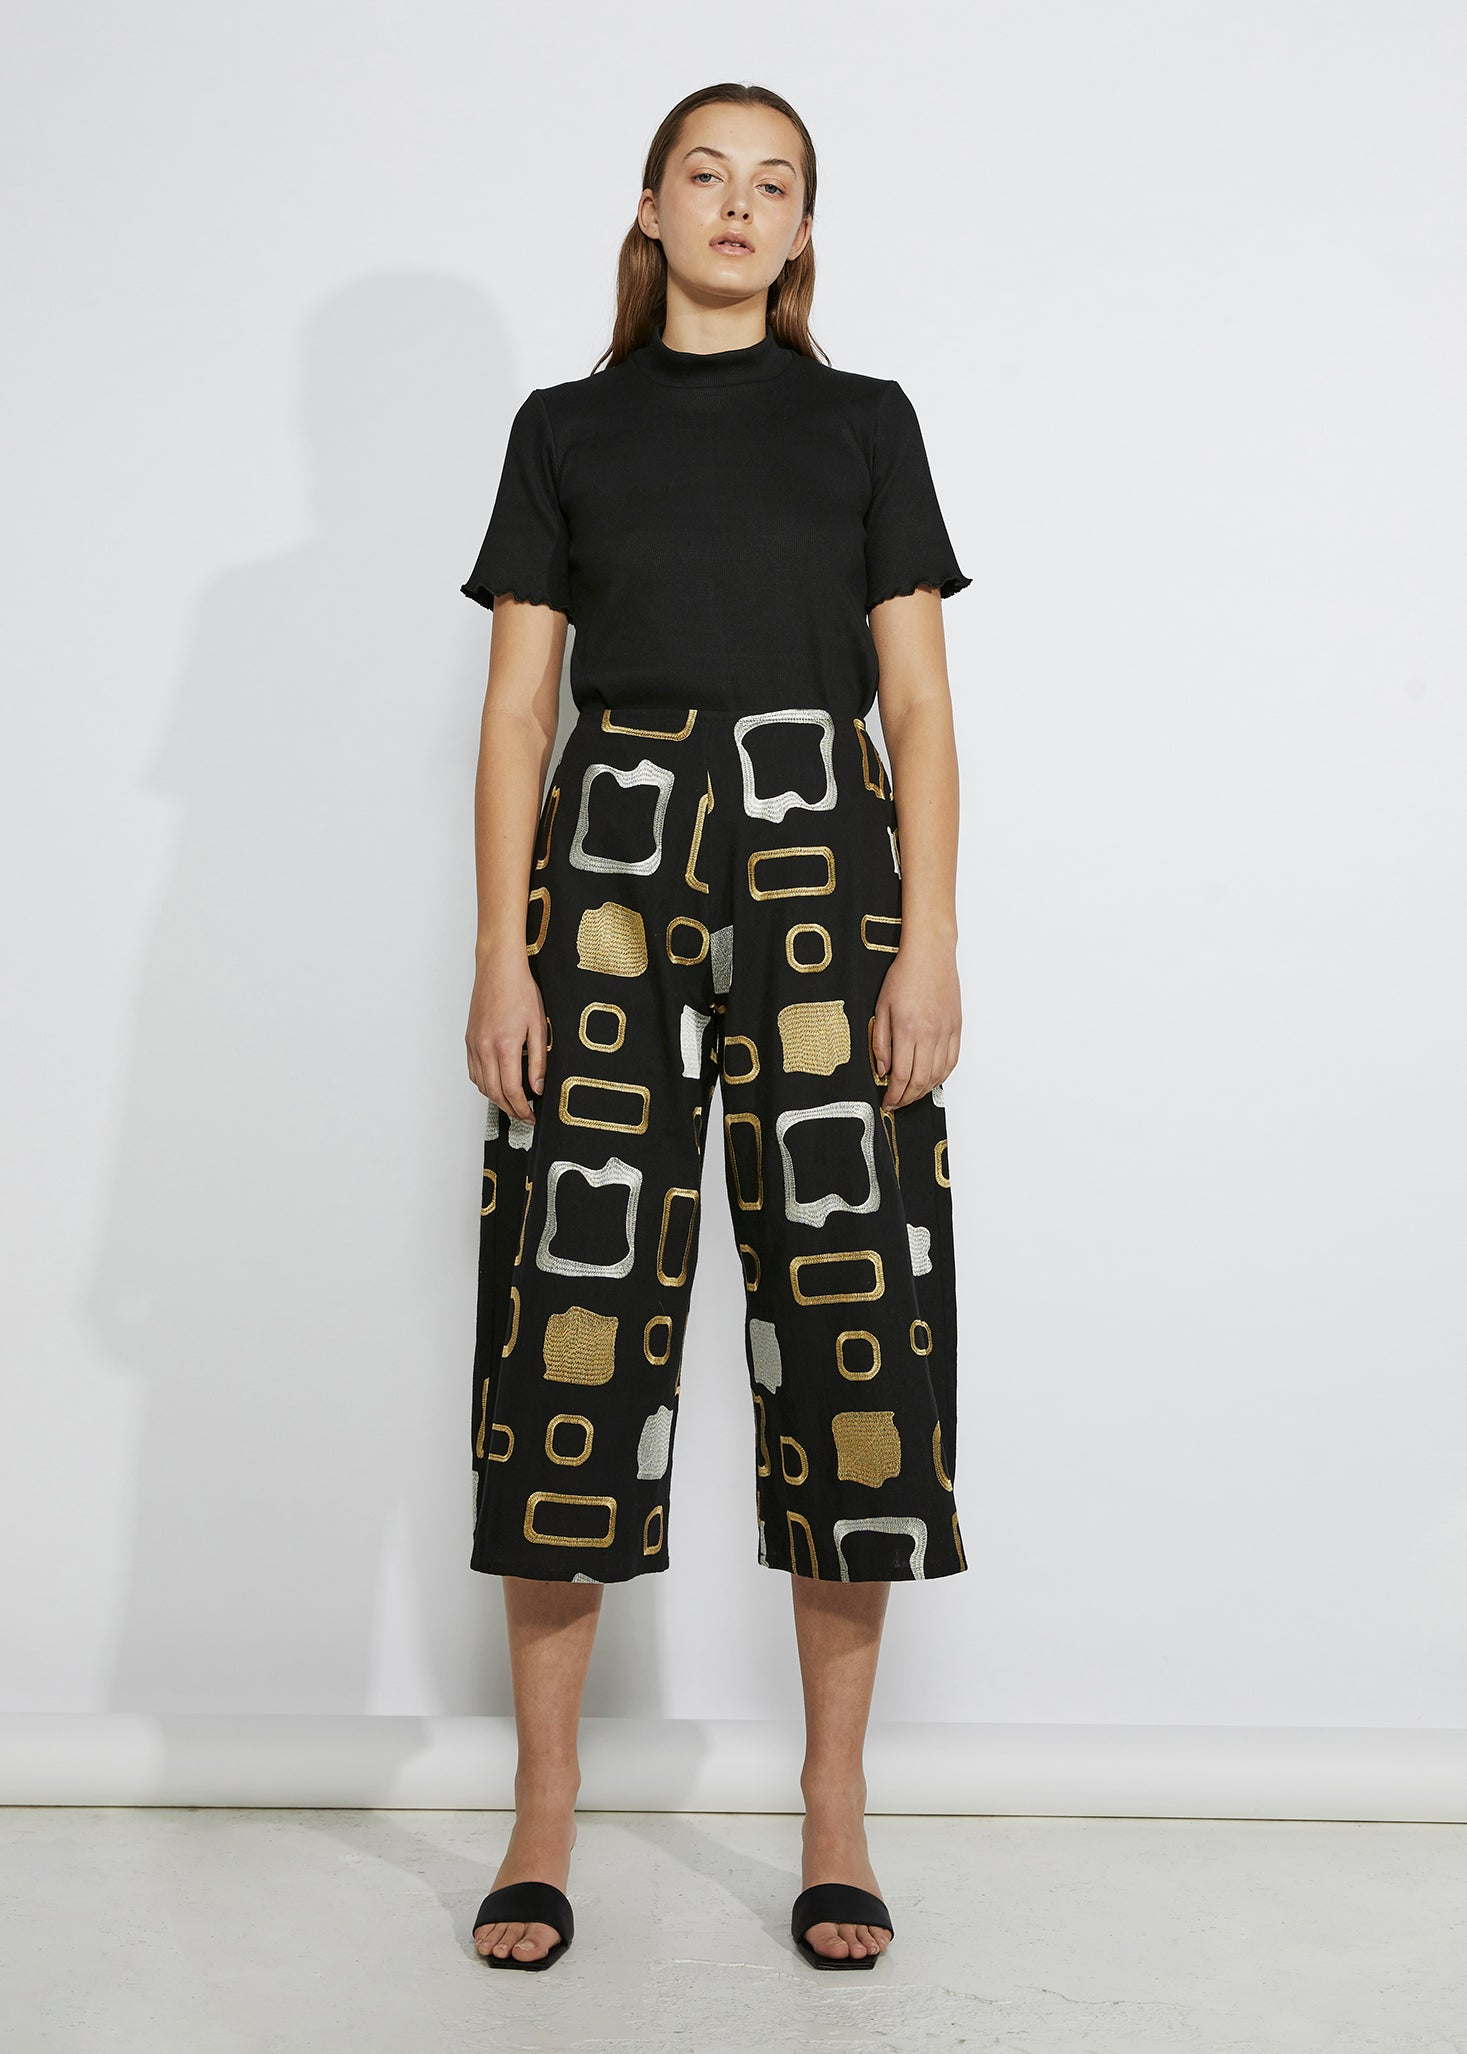 keegan heavy metal look book. Slow handmade fashion. Black tee gold silver patterned culotte pants